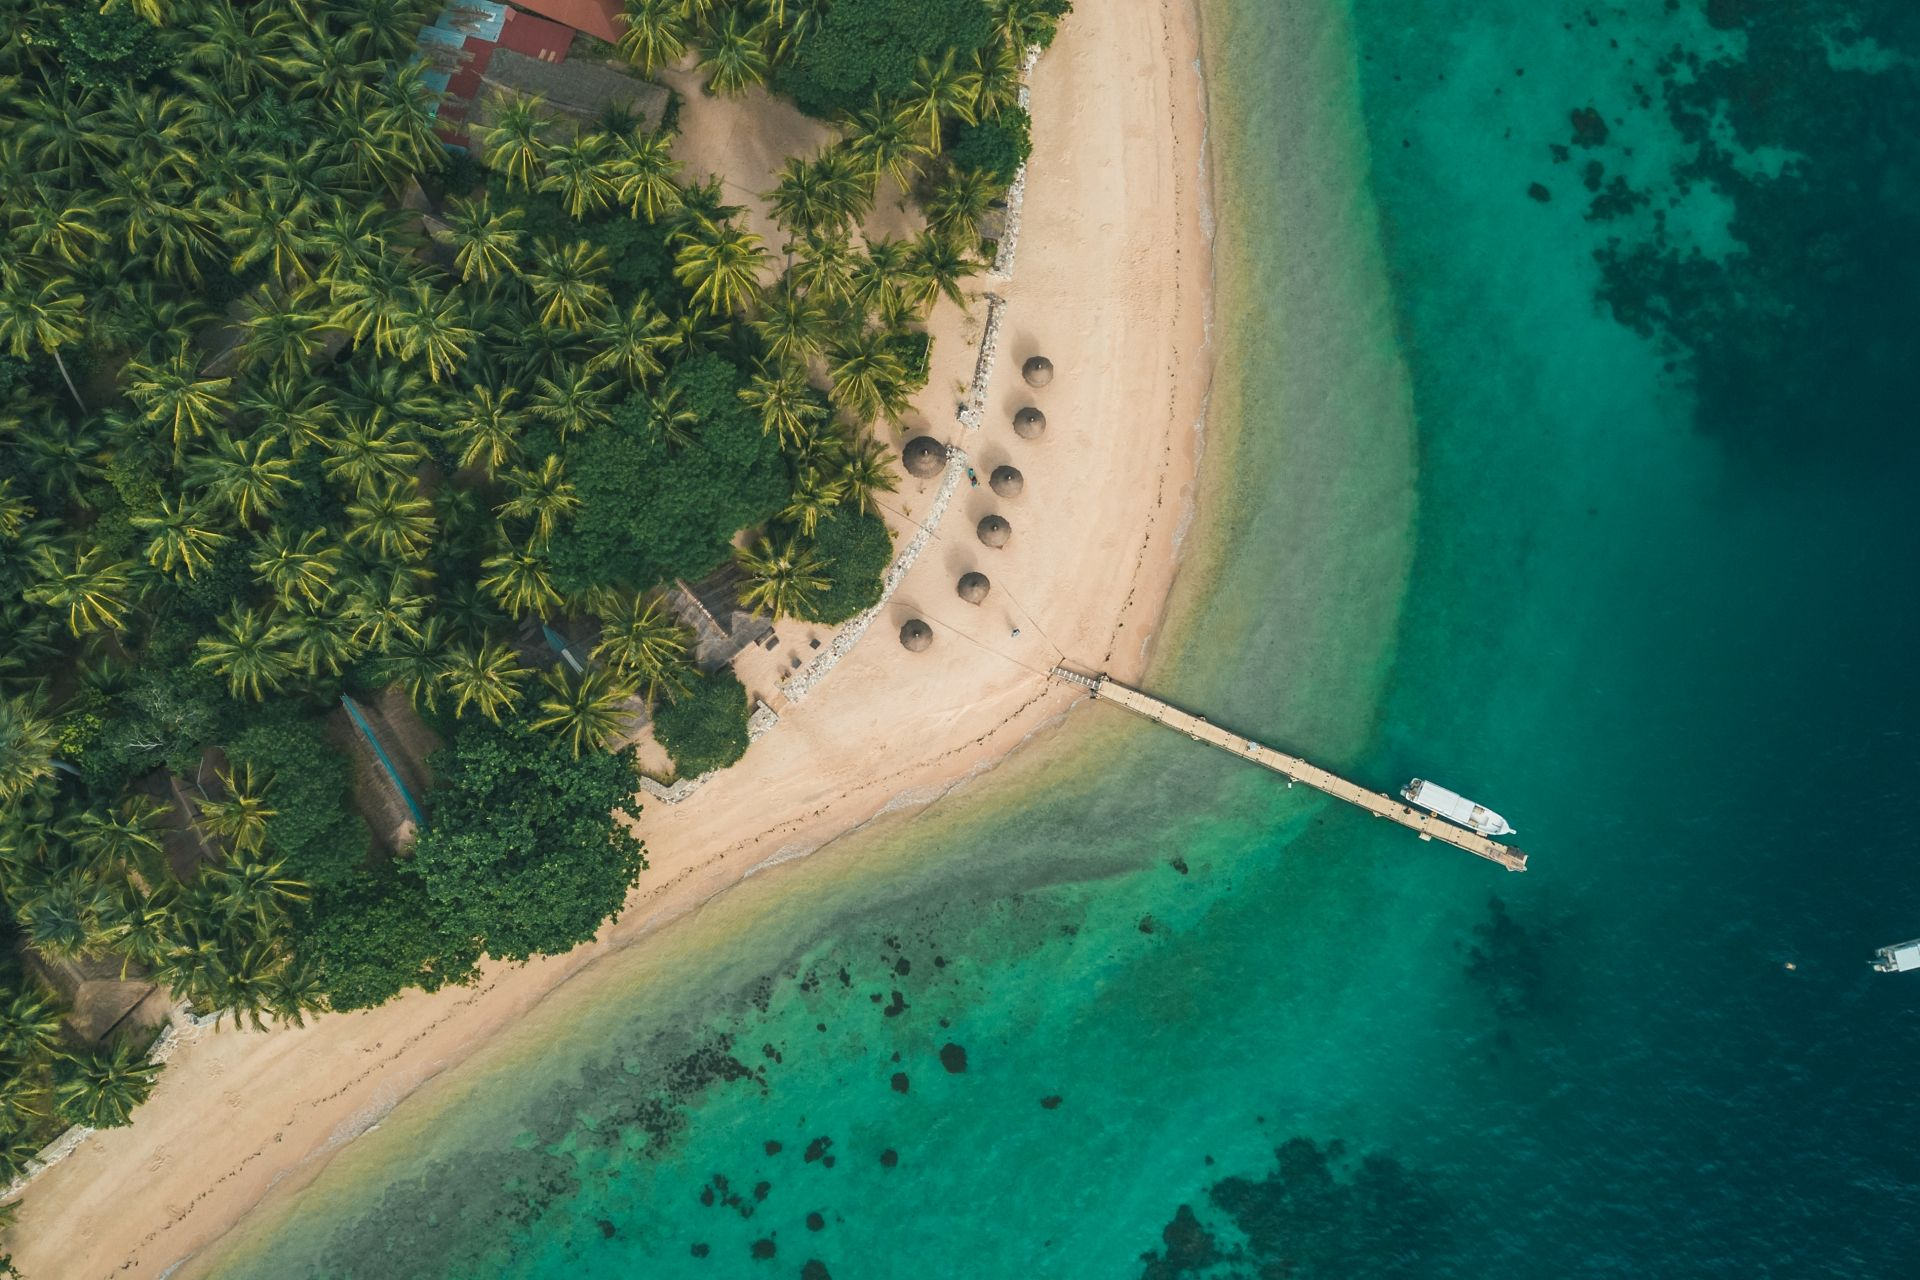 Flower Island Resort, Palawan: Why You Should Visit This World-Class Destination